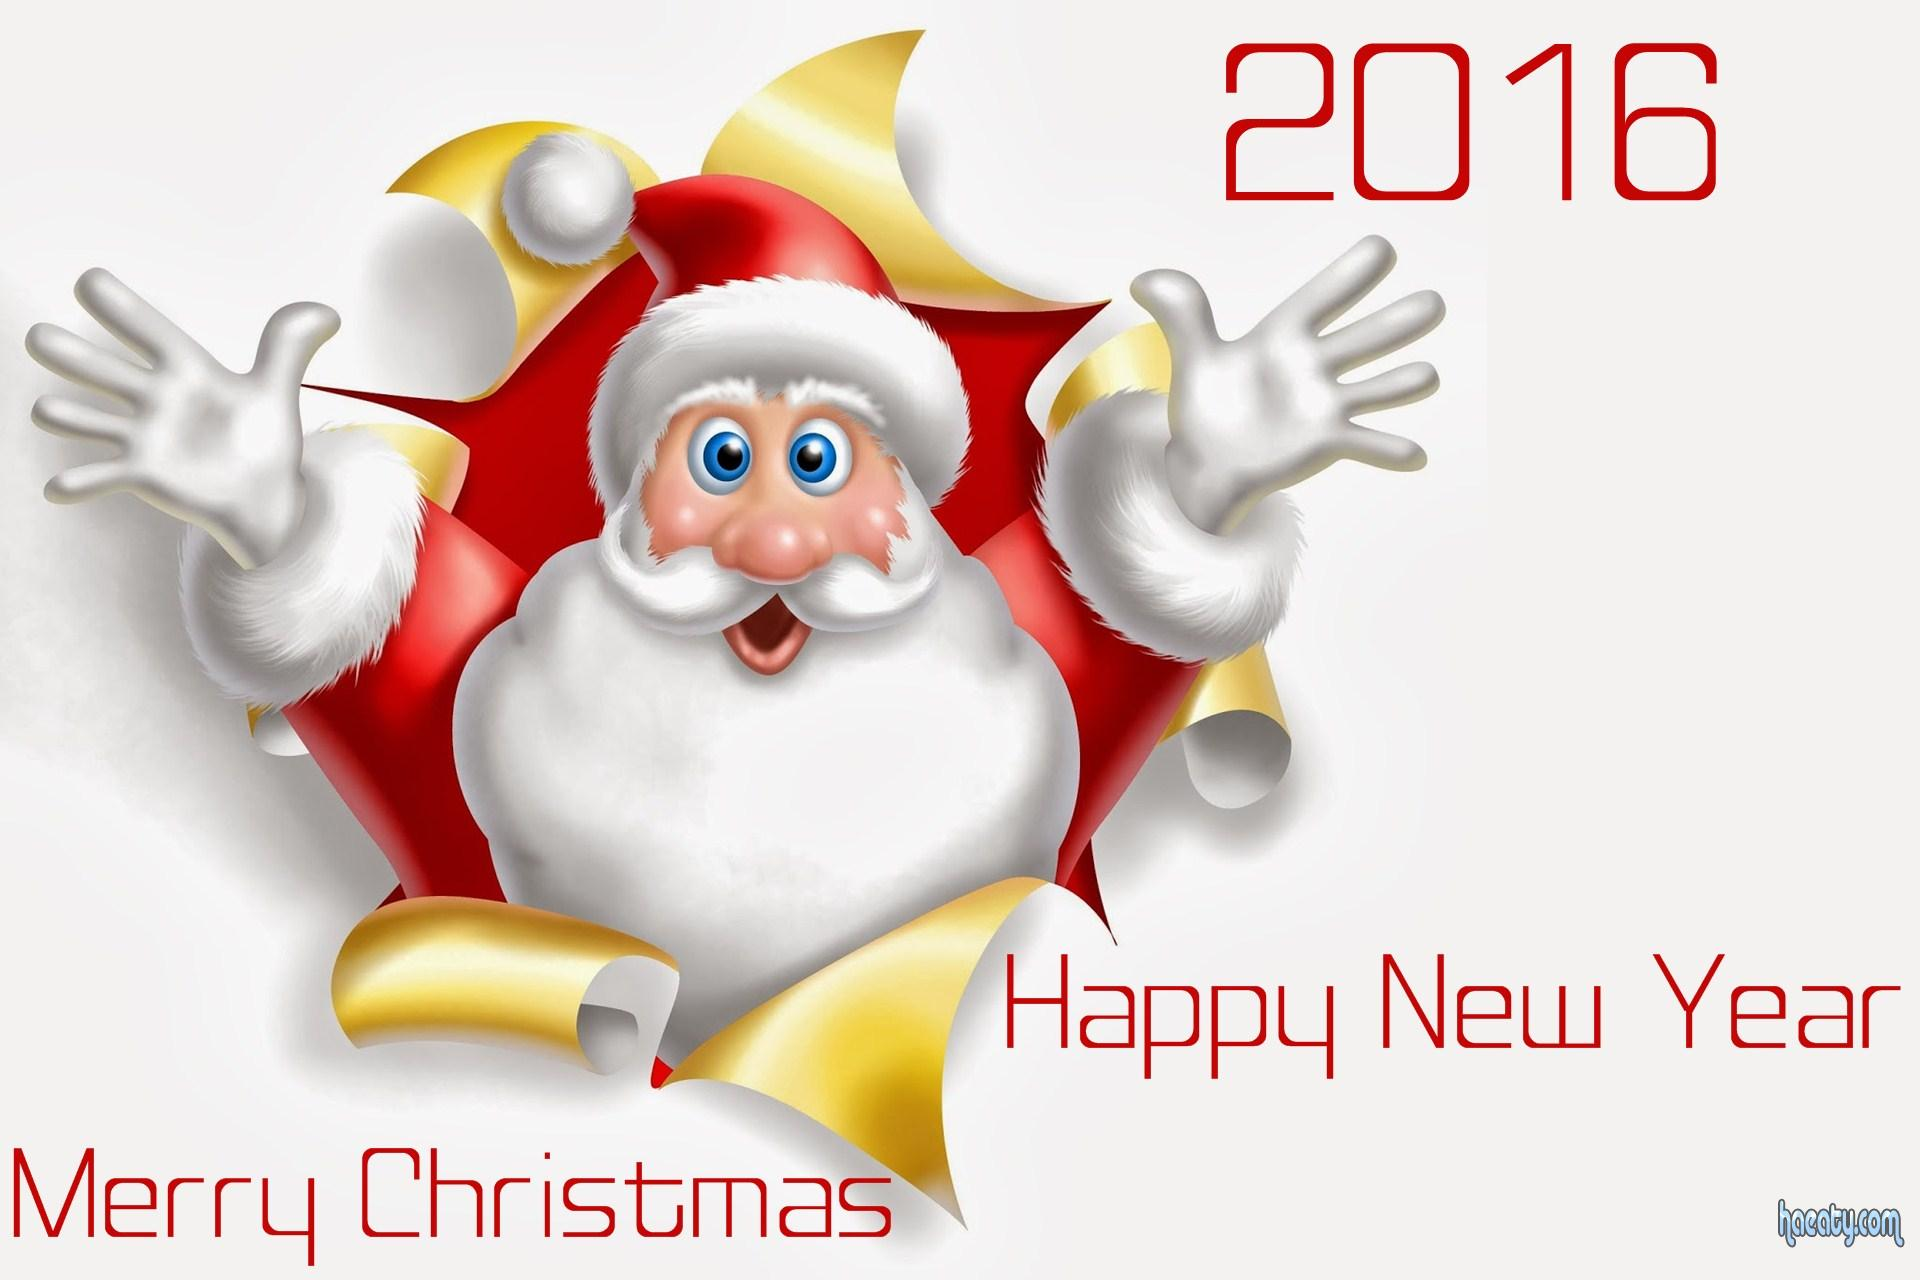 الكريسماس 2016-Merry-Christmas-and-Happy-new-year-2016 1450540305951.jpg